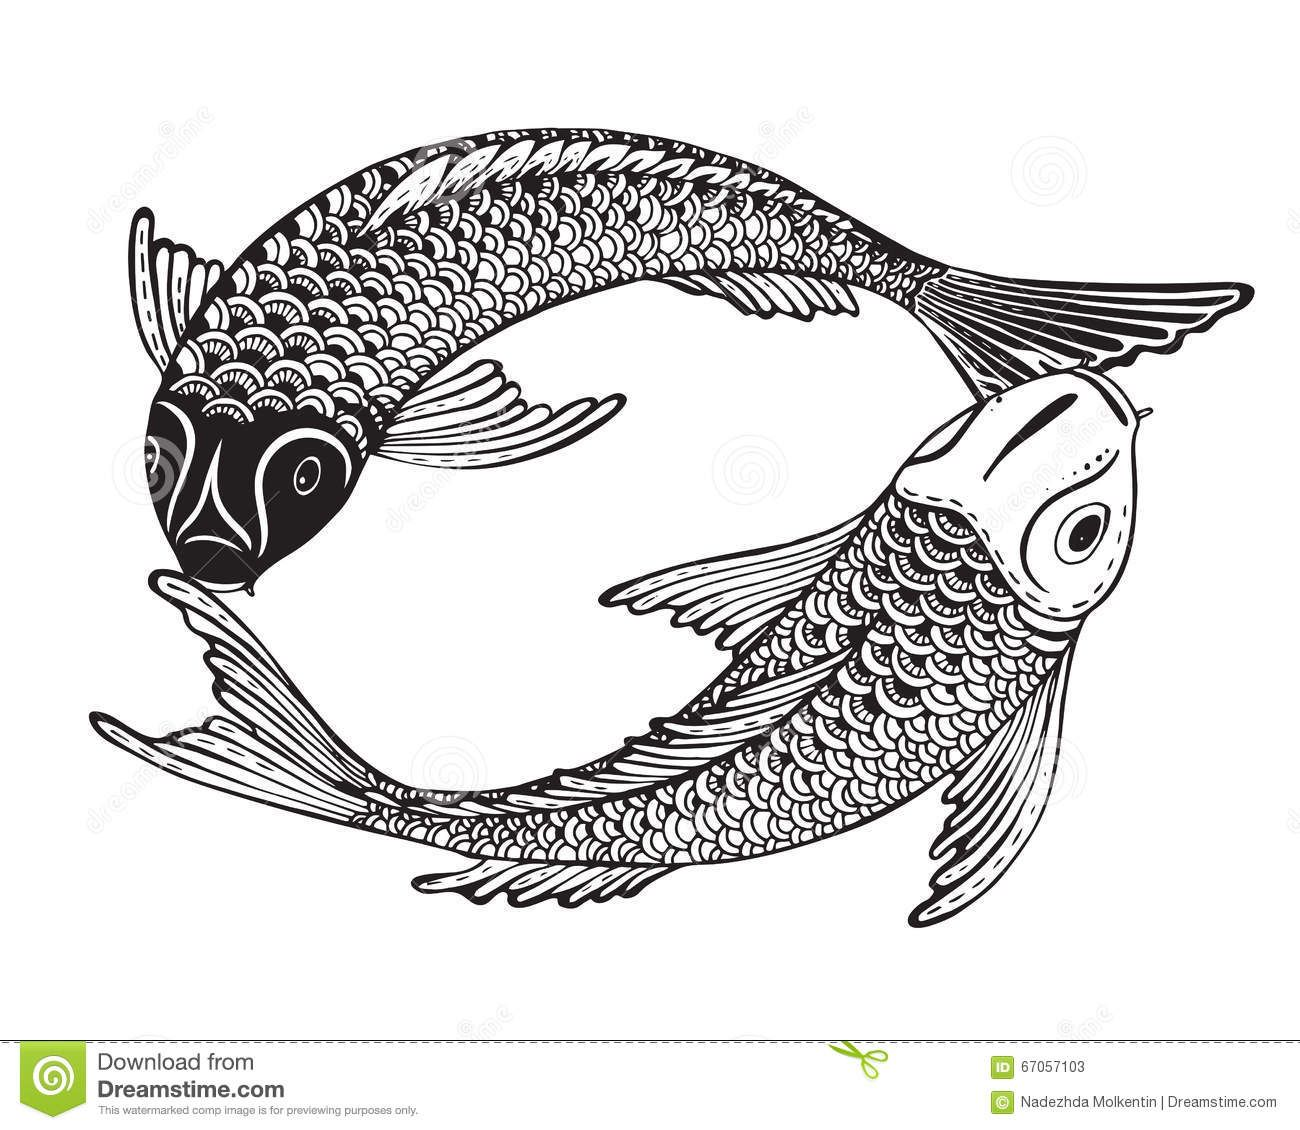 Chinese koi illustrations hand drawn vector illustration of two koi fishes japanese carp stock